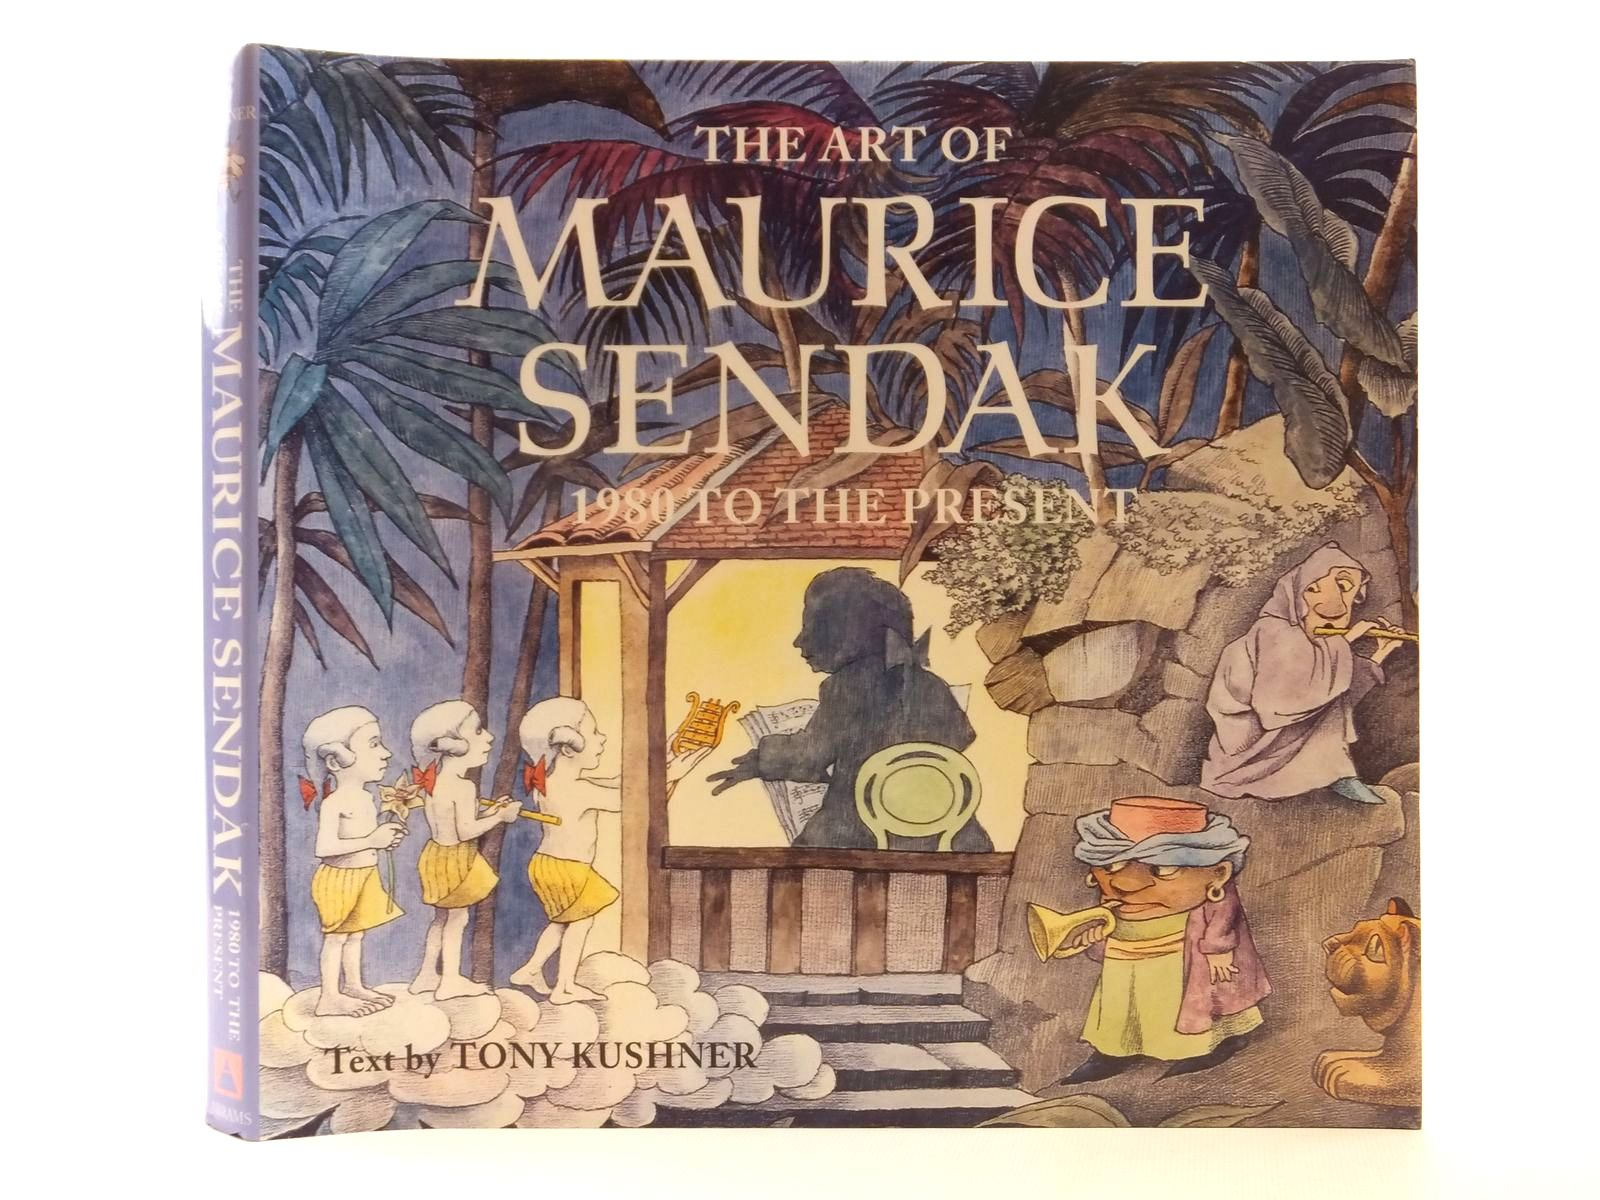 Photo of THE ART OF MAURICE SENDAK 1980 TO THE PRESENT written by Kushner, Tony illustrated by Sendak, Maurice published by Harry N. Abrams, Inc. (STOCK CODE: 1608927)  for sale by Stella & Rose's Books